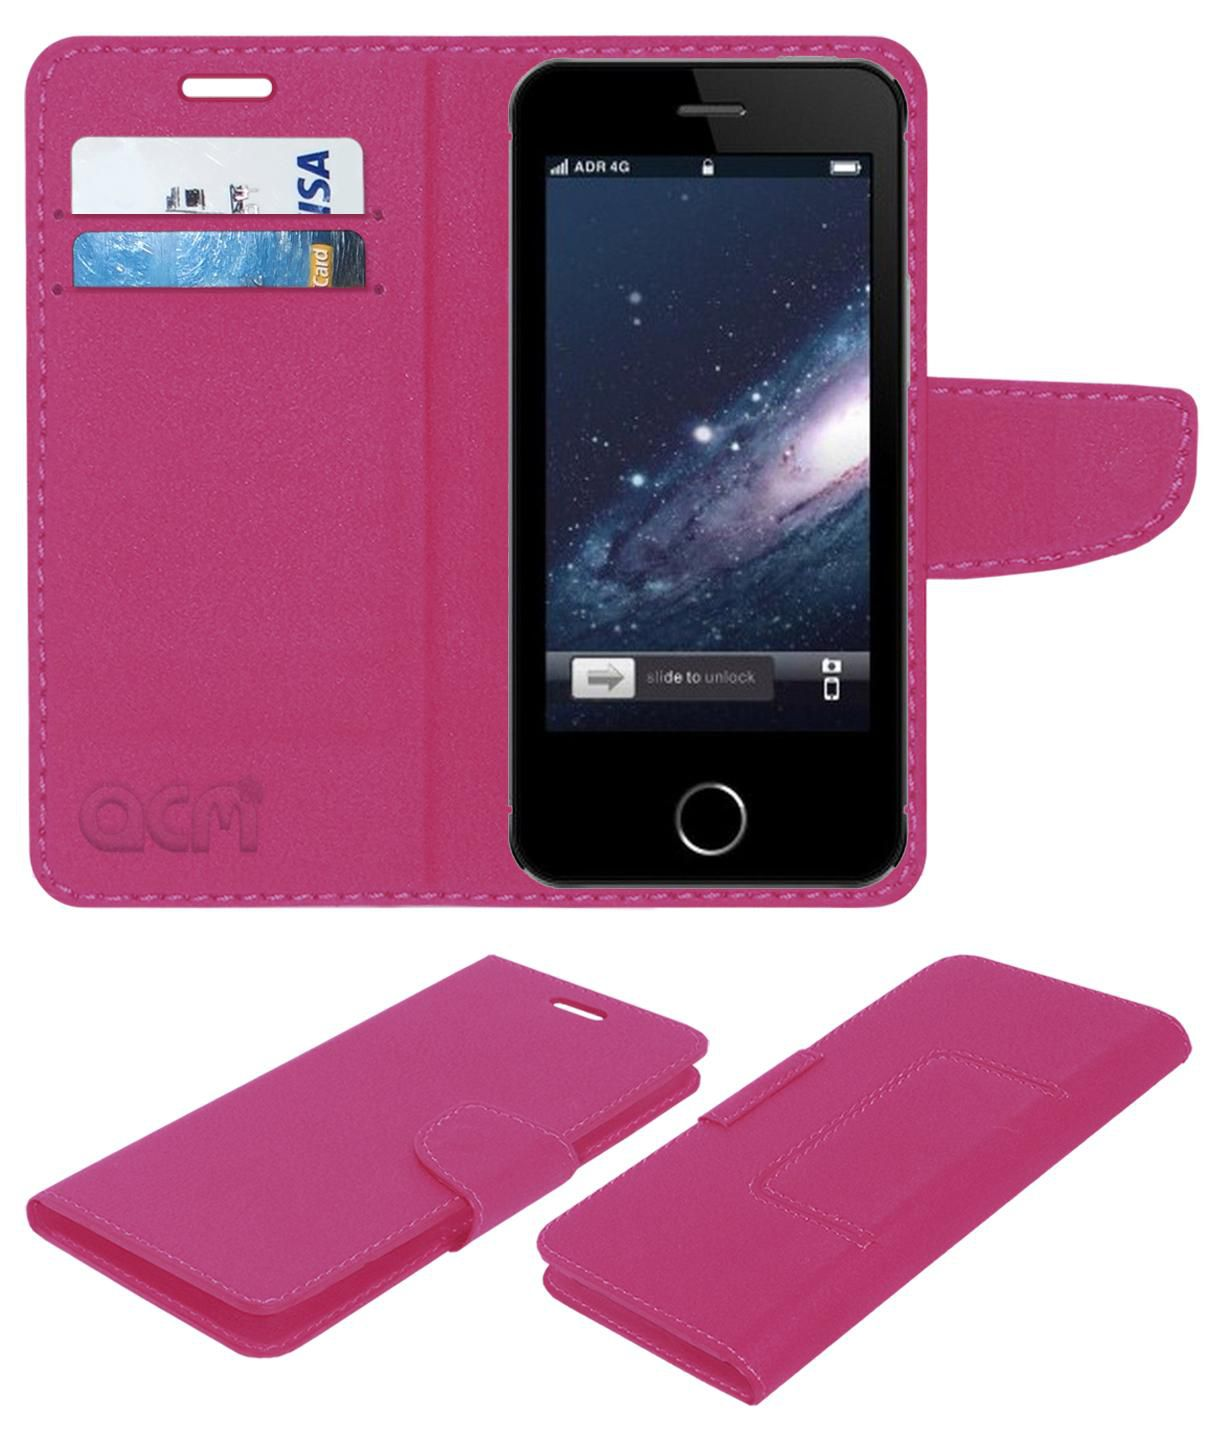 Spice Flo M6112 Flip Cover by ACM - Pink